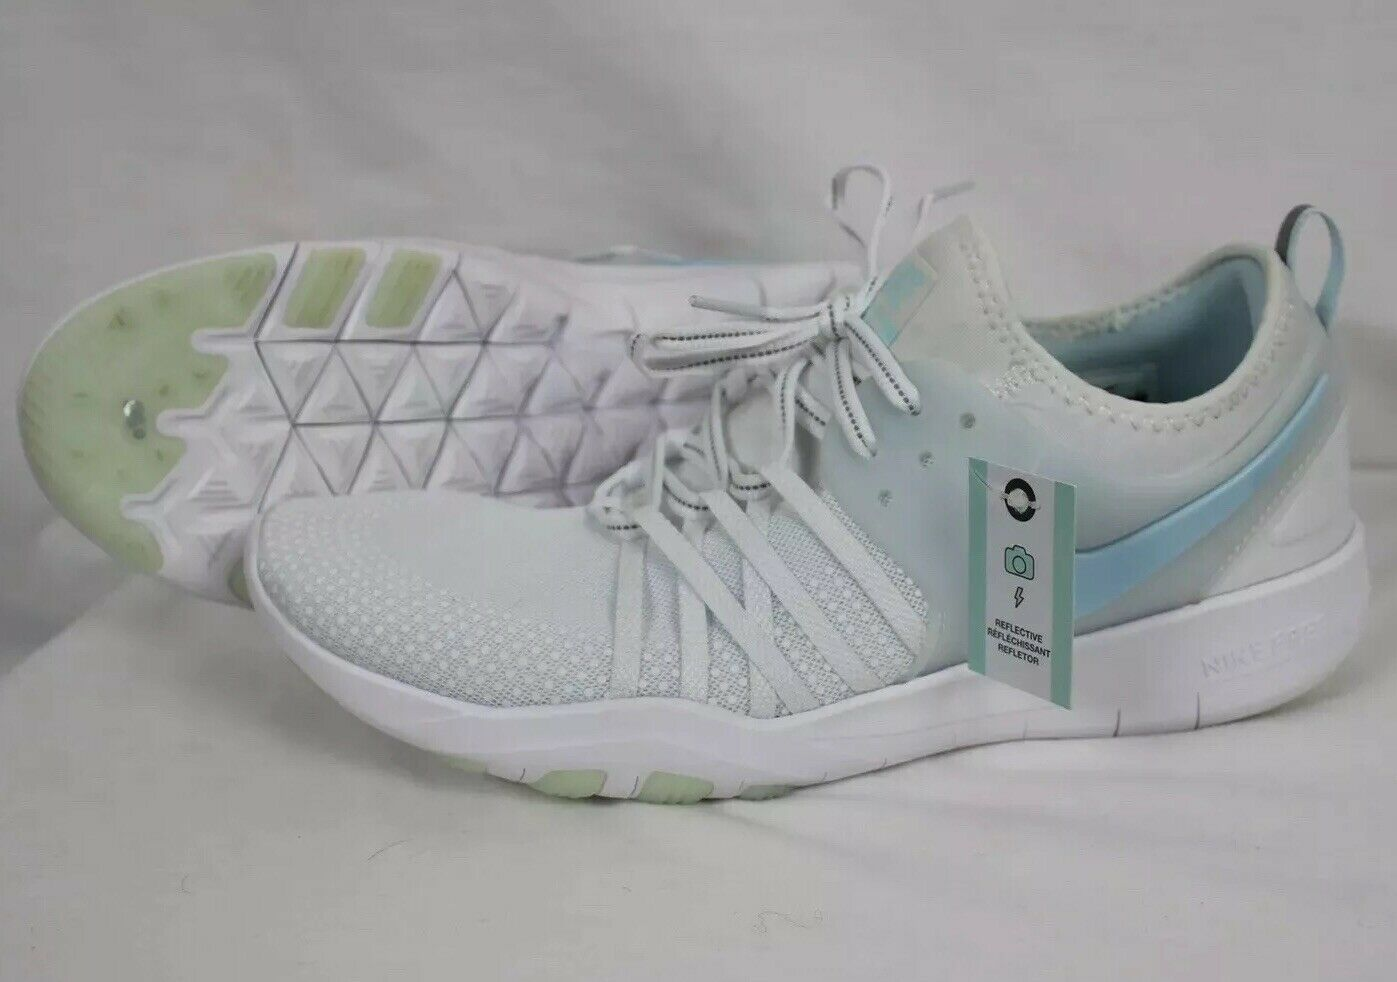 New Womens Nike Free TR 7 Reflect Trainer shoes AA2238-100 sz 11 White Glacir